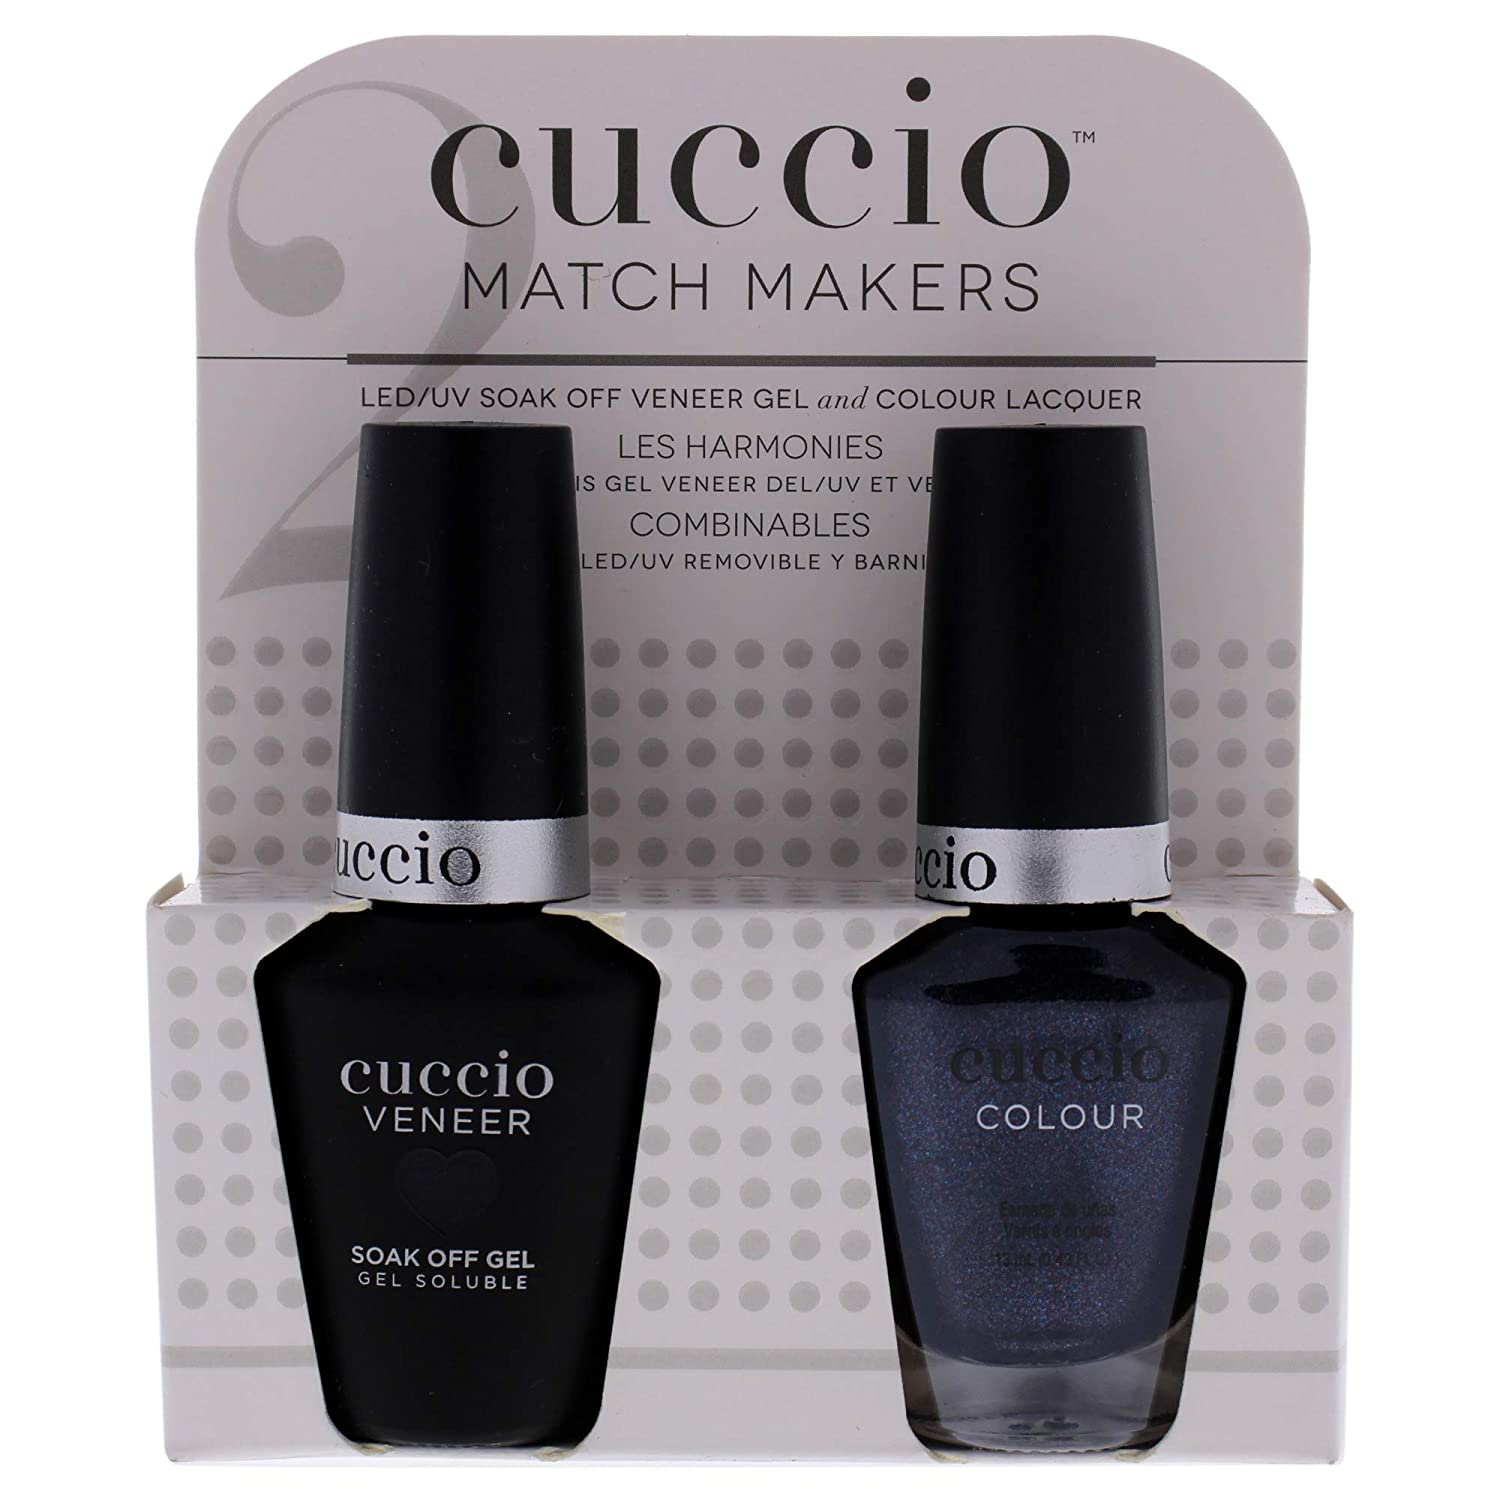 Cuccio Matchmaker - Colour Nail Lacquer & Veneer Gel Polish - Cover Me Up! - For Manicures & Pedicures, Full Coverage - Long Lasting, High Shine - Cruelty, Formaldehyde & Toluene Free - 2 pc